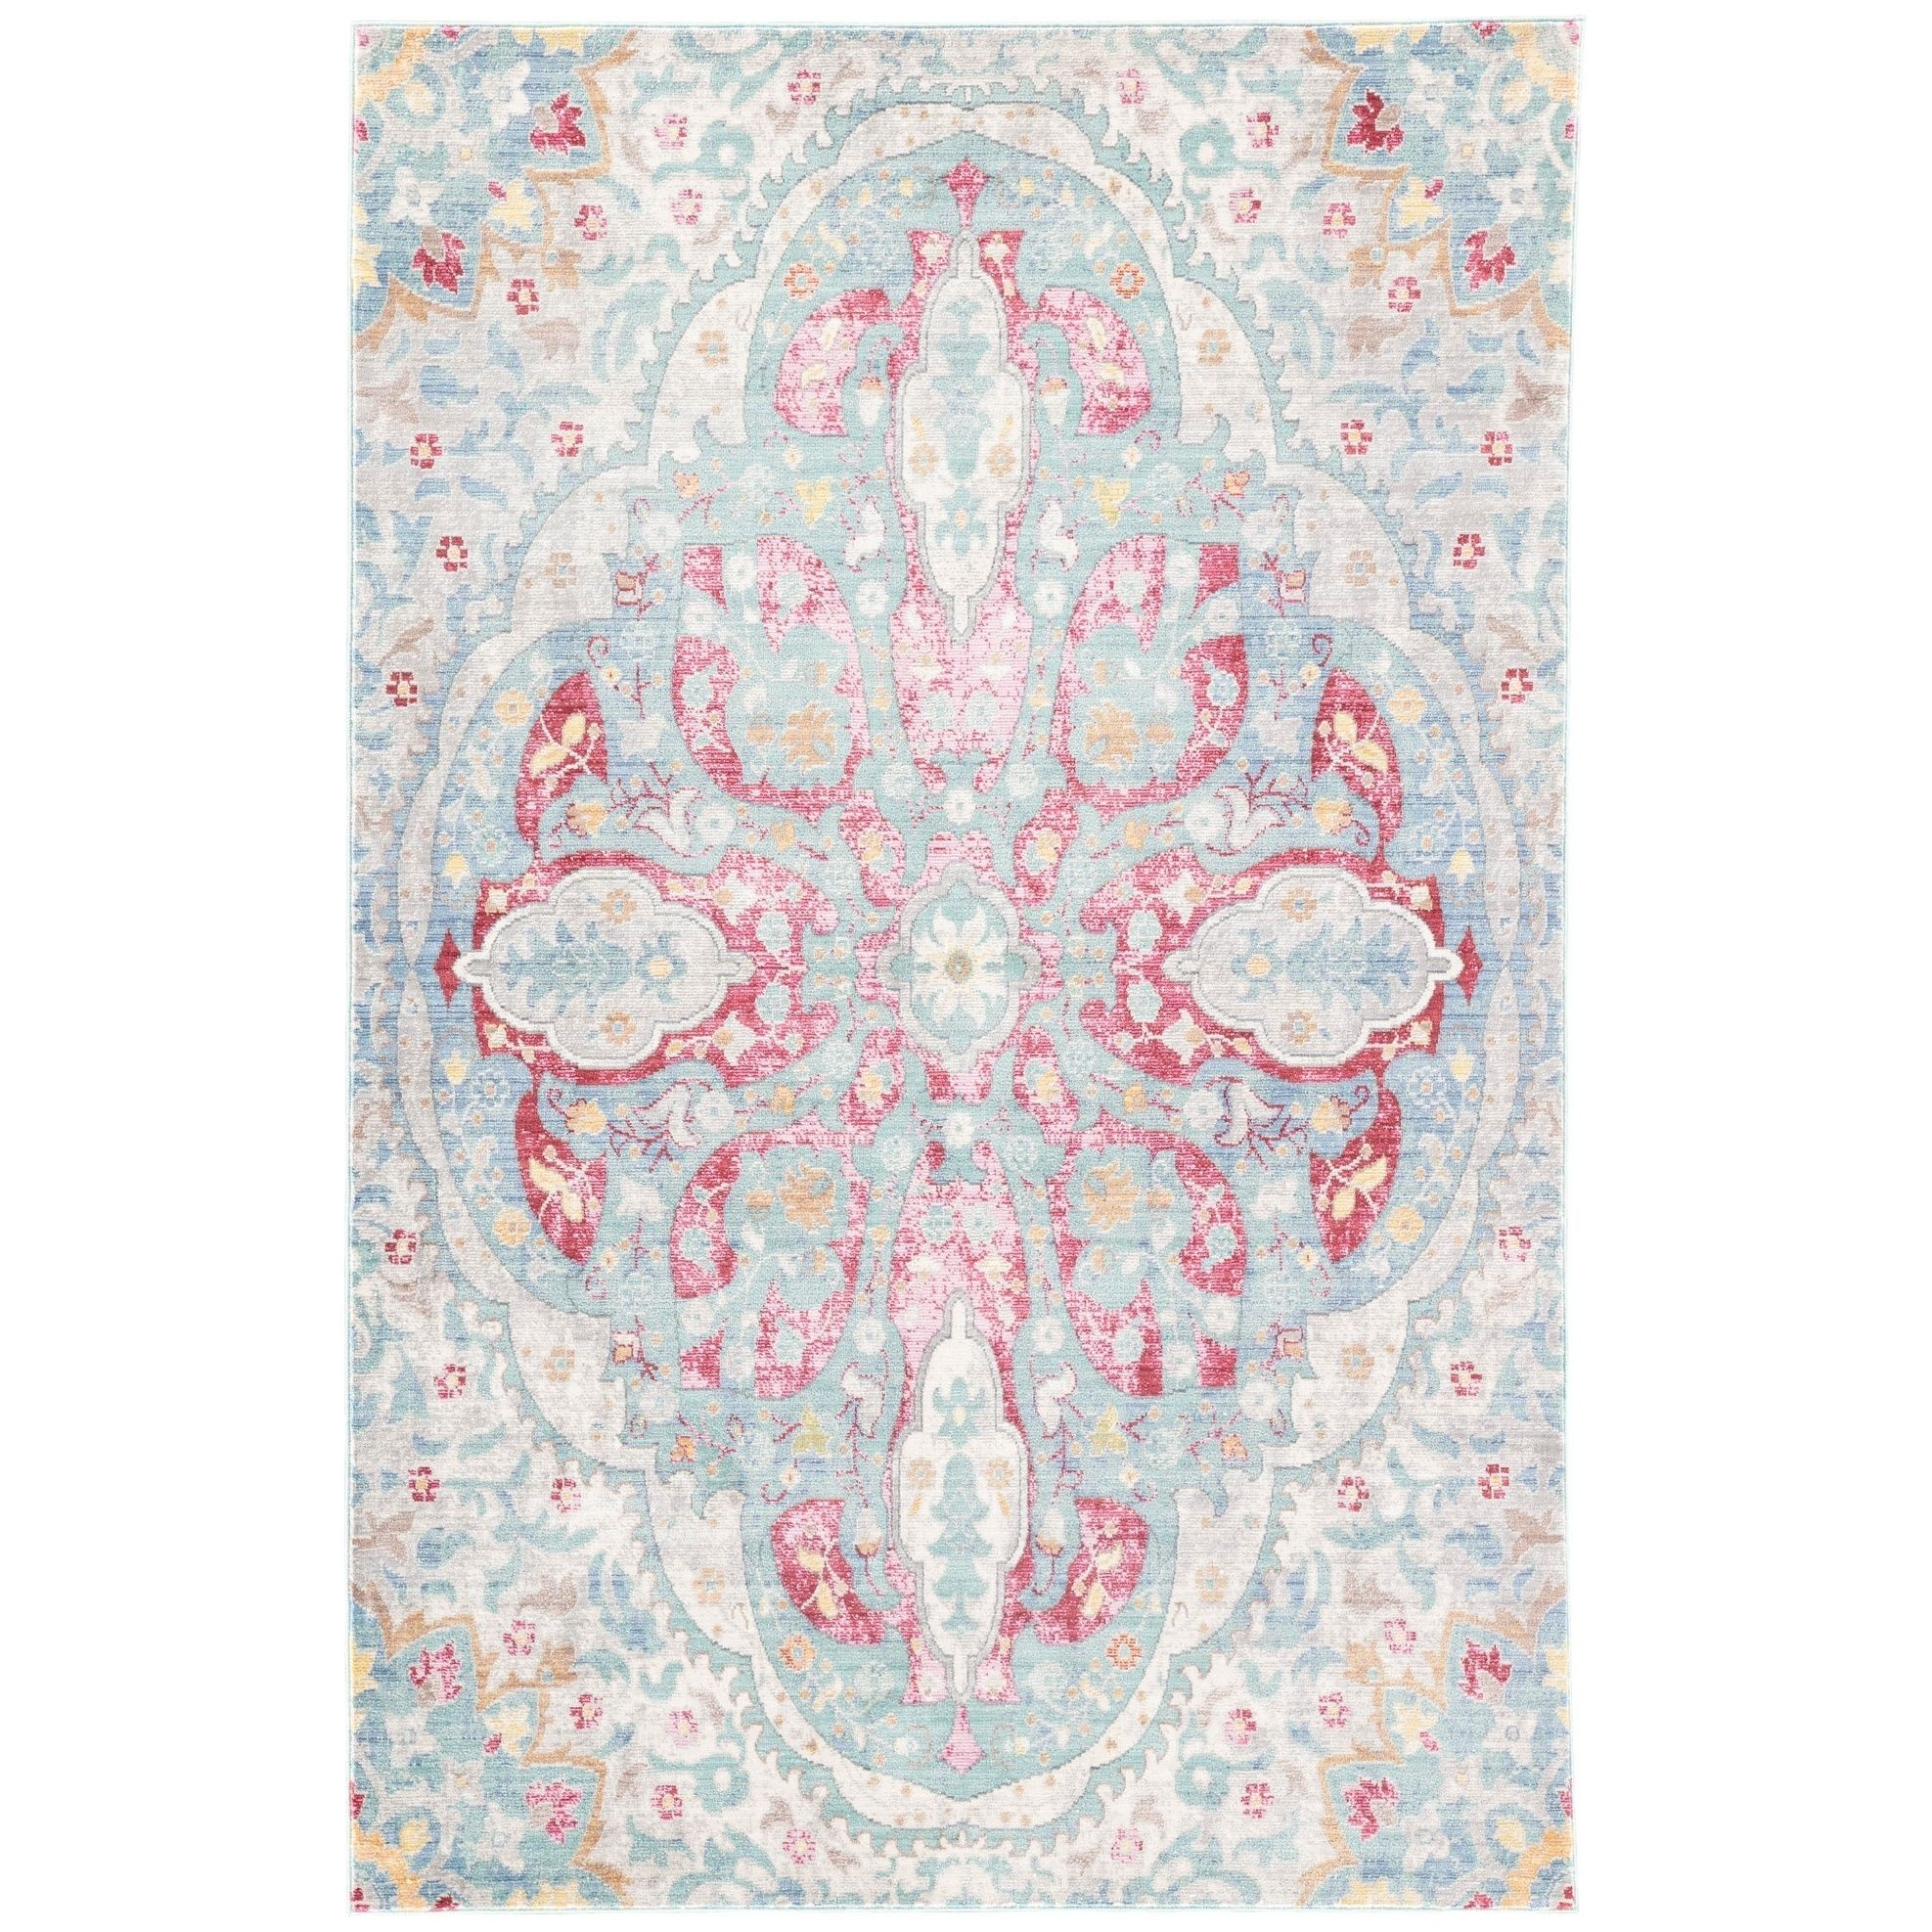 Valentine Medallion Light Blue Pink Area Rug 10 X 14 10 X 14 Juniper Home Pink Area Rug Area Rugs Contemporary Area Rugs